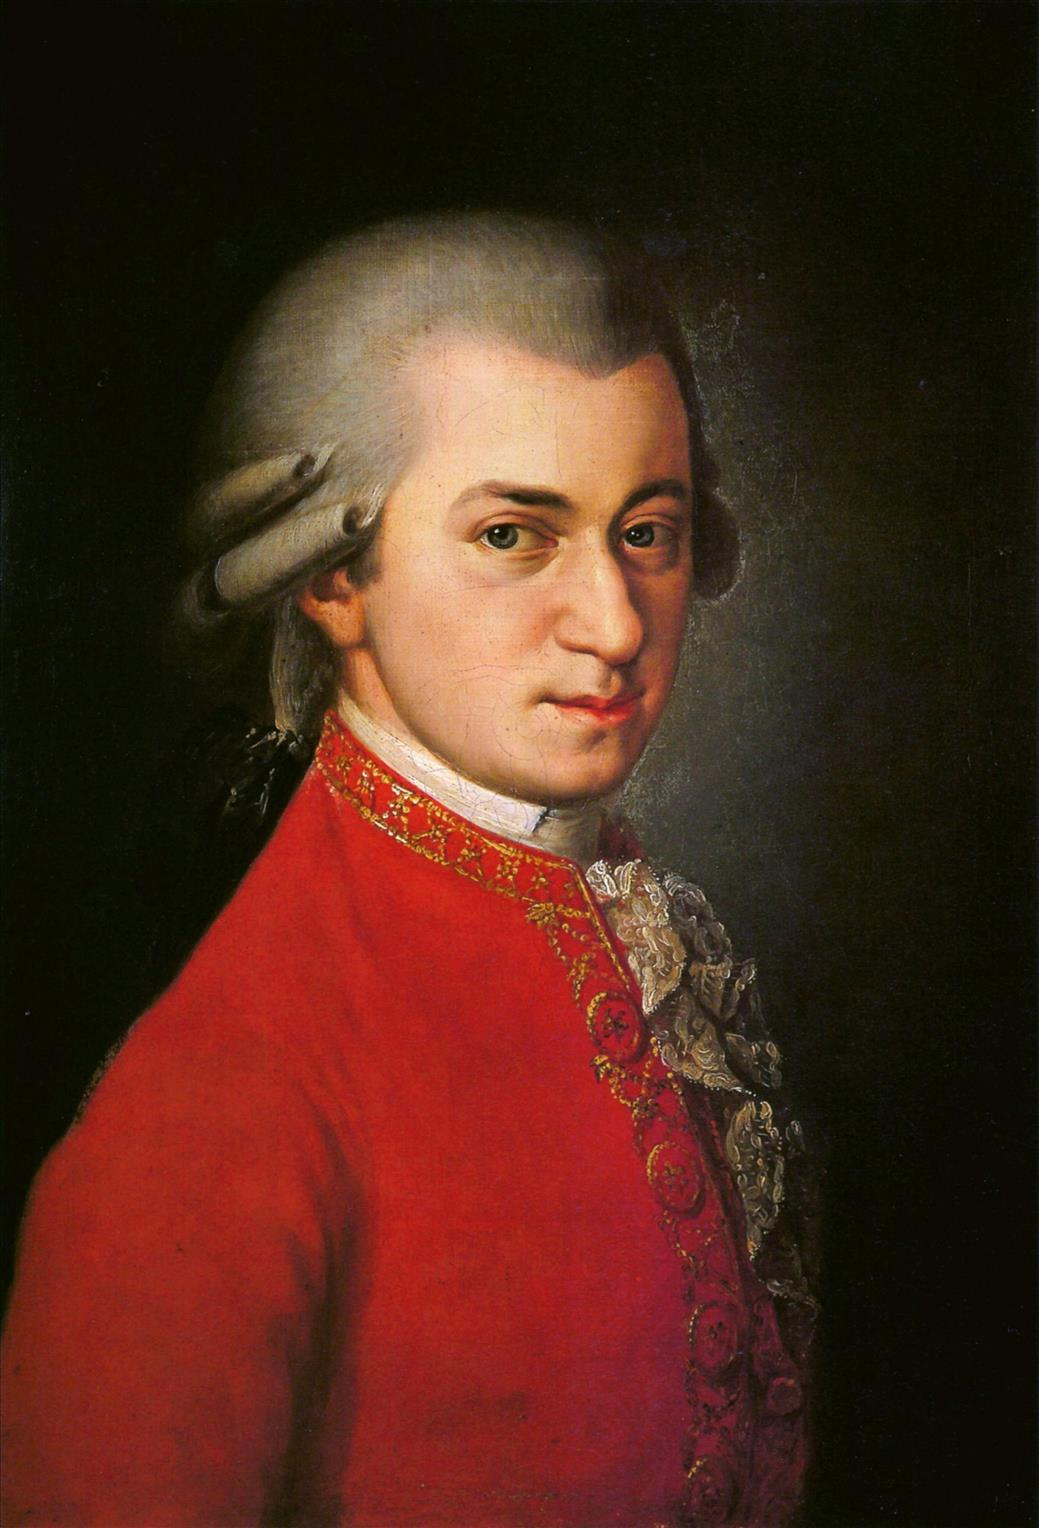 MOZART: REQUIEM, AND OTHER SACRED WORKS flyer